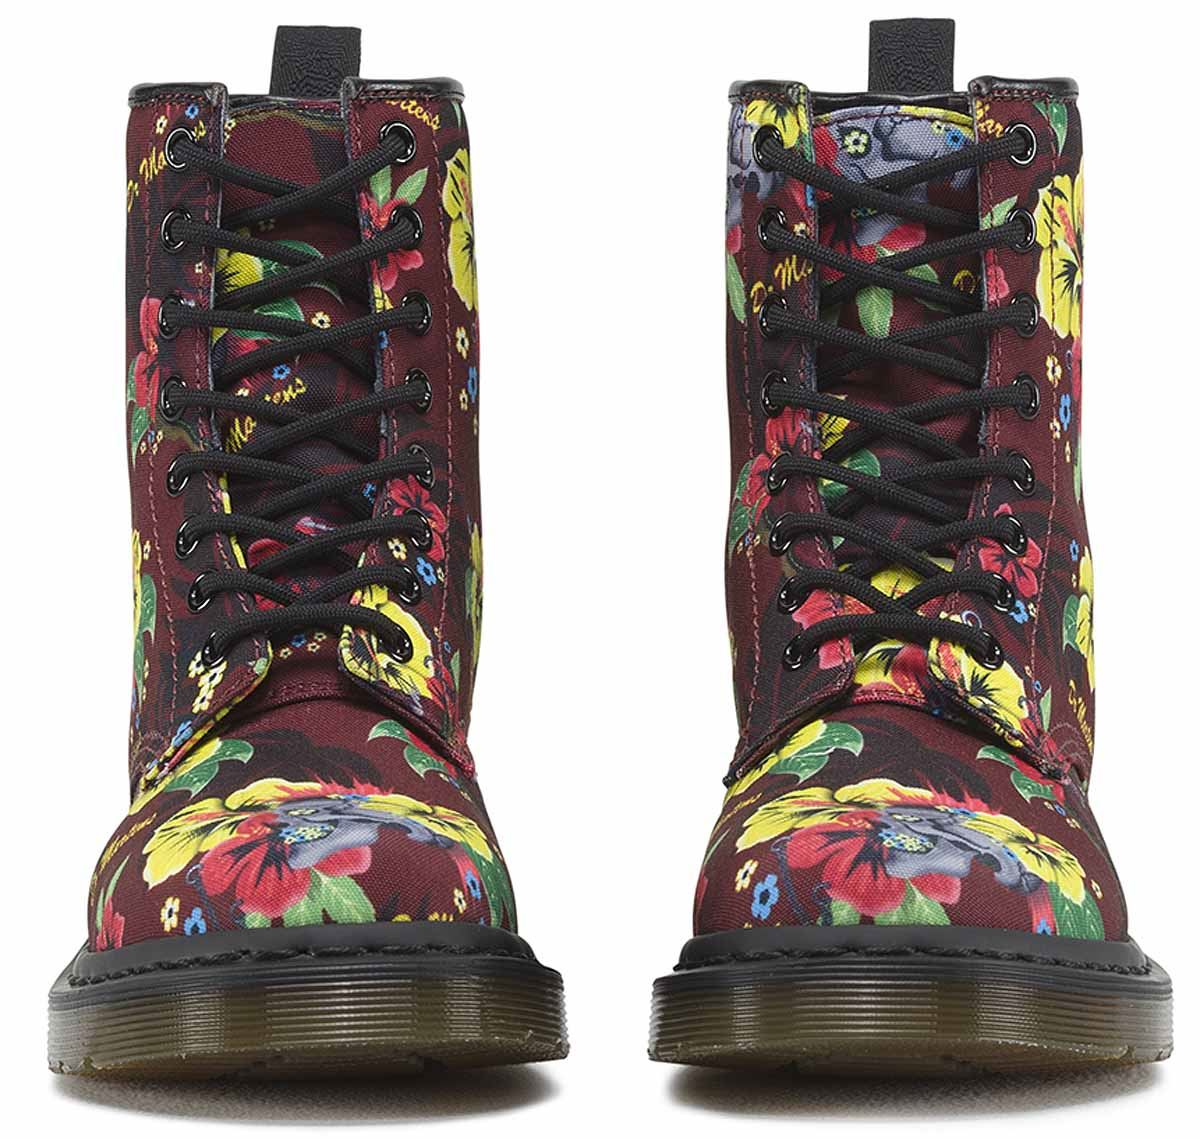 Dr-Martens-Castel-1460-Hawaiian-Punk-1980-039-s-Style-8-Eye-Canvas-Ankle-Boots